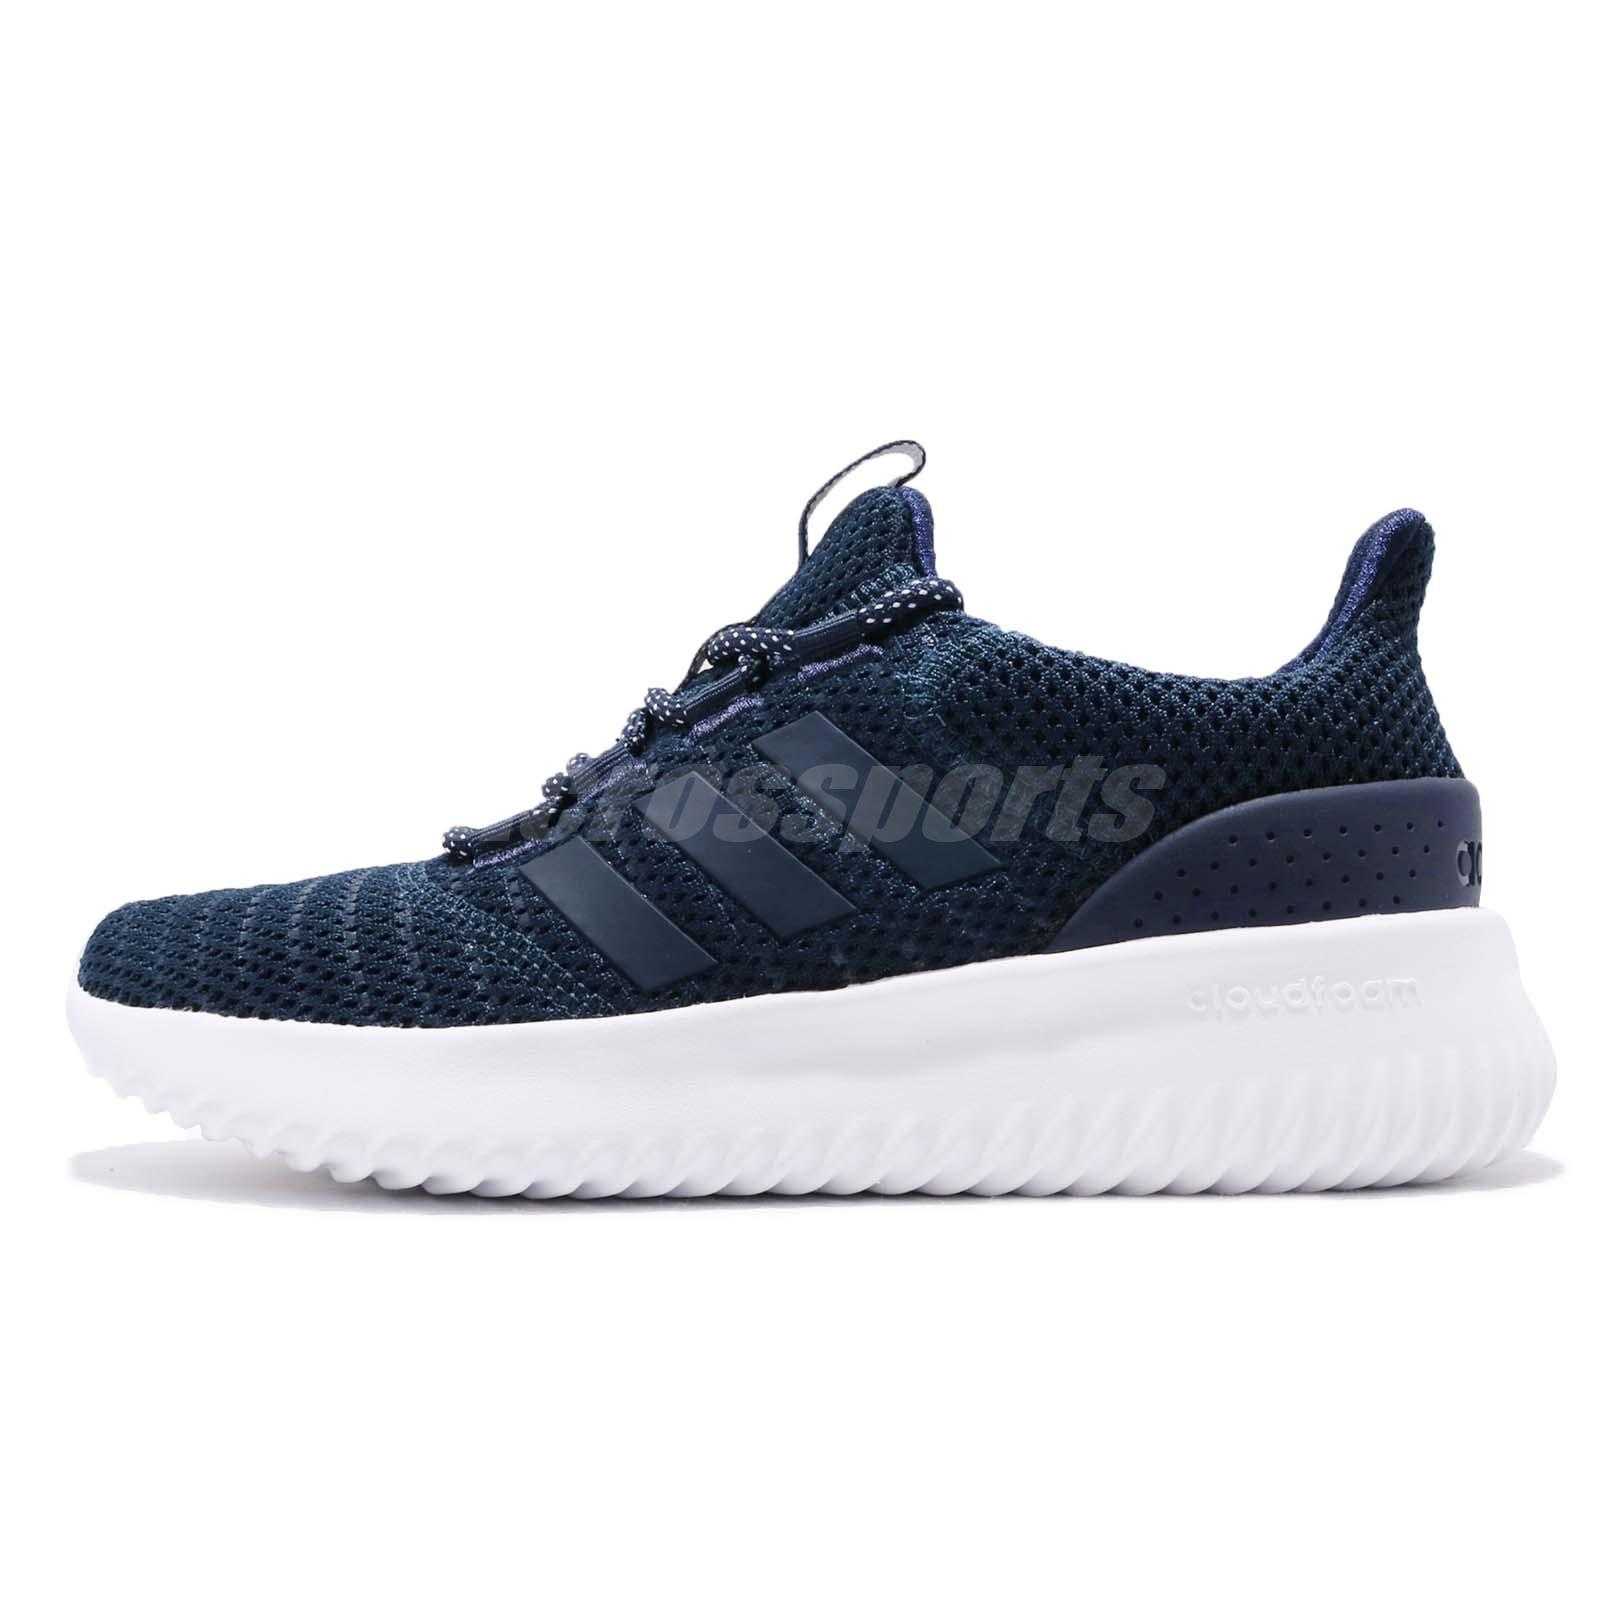 adidas Cloudfoam Ultimate Core Navy White Women Running Shoes Sneakers  DB0606 178610e0a